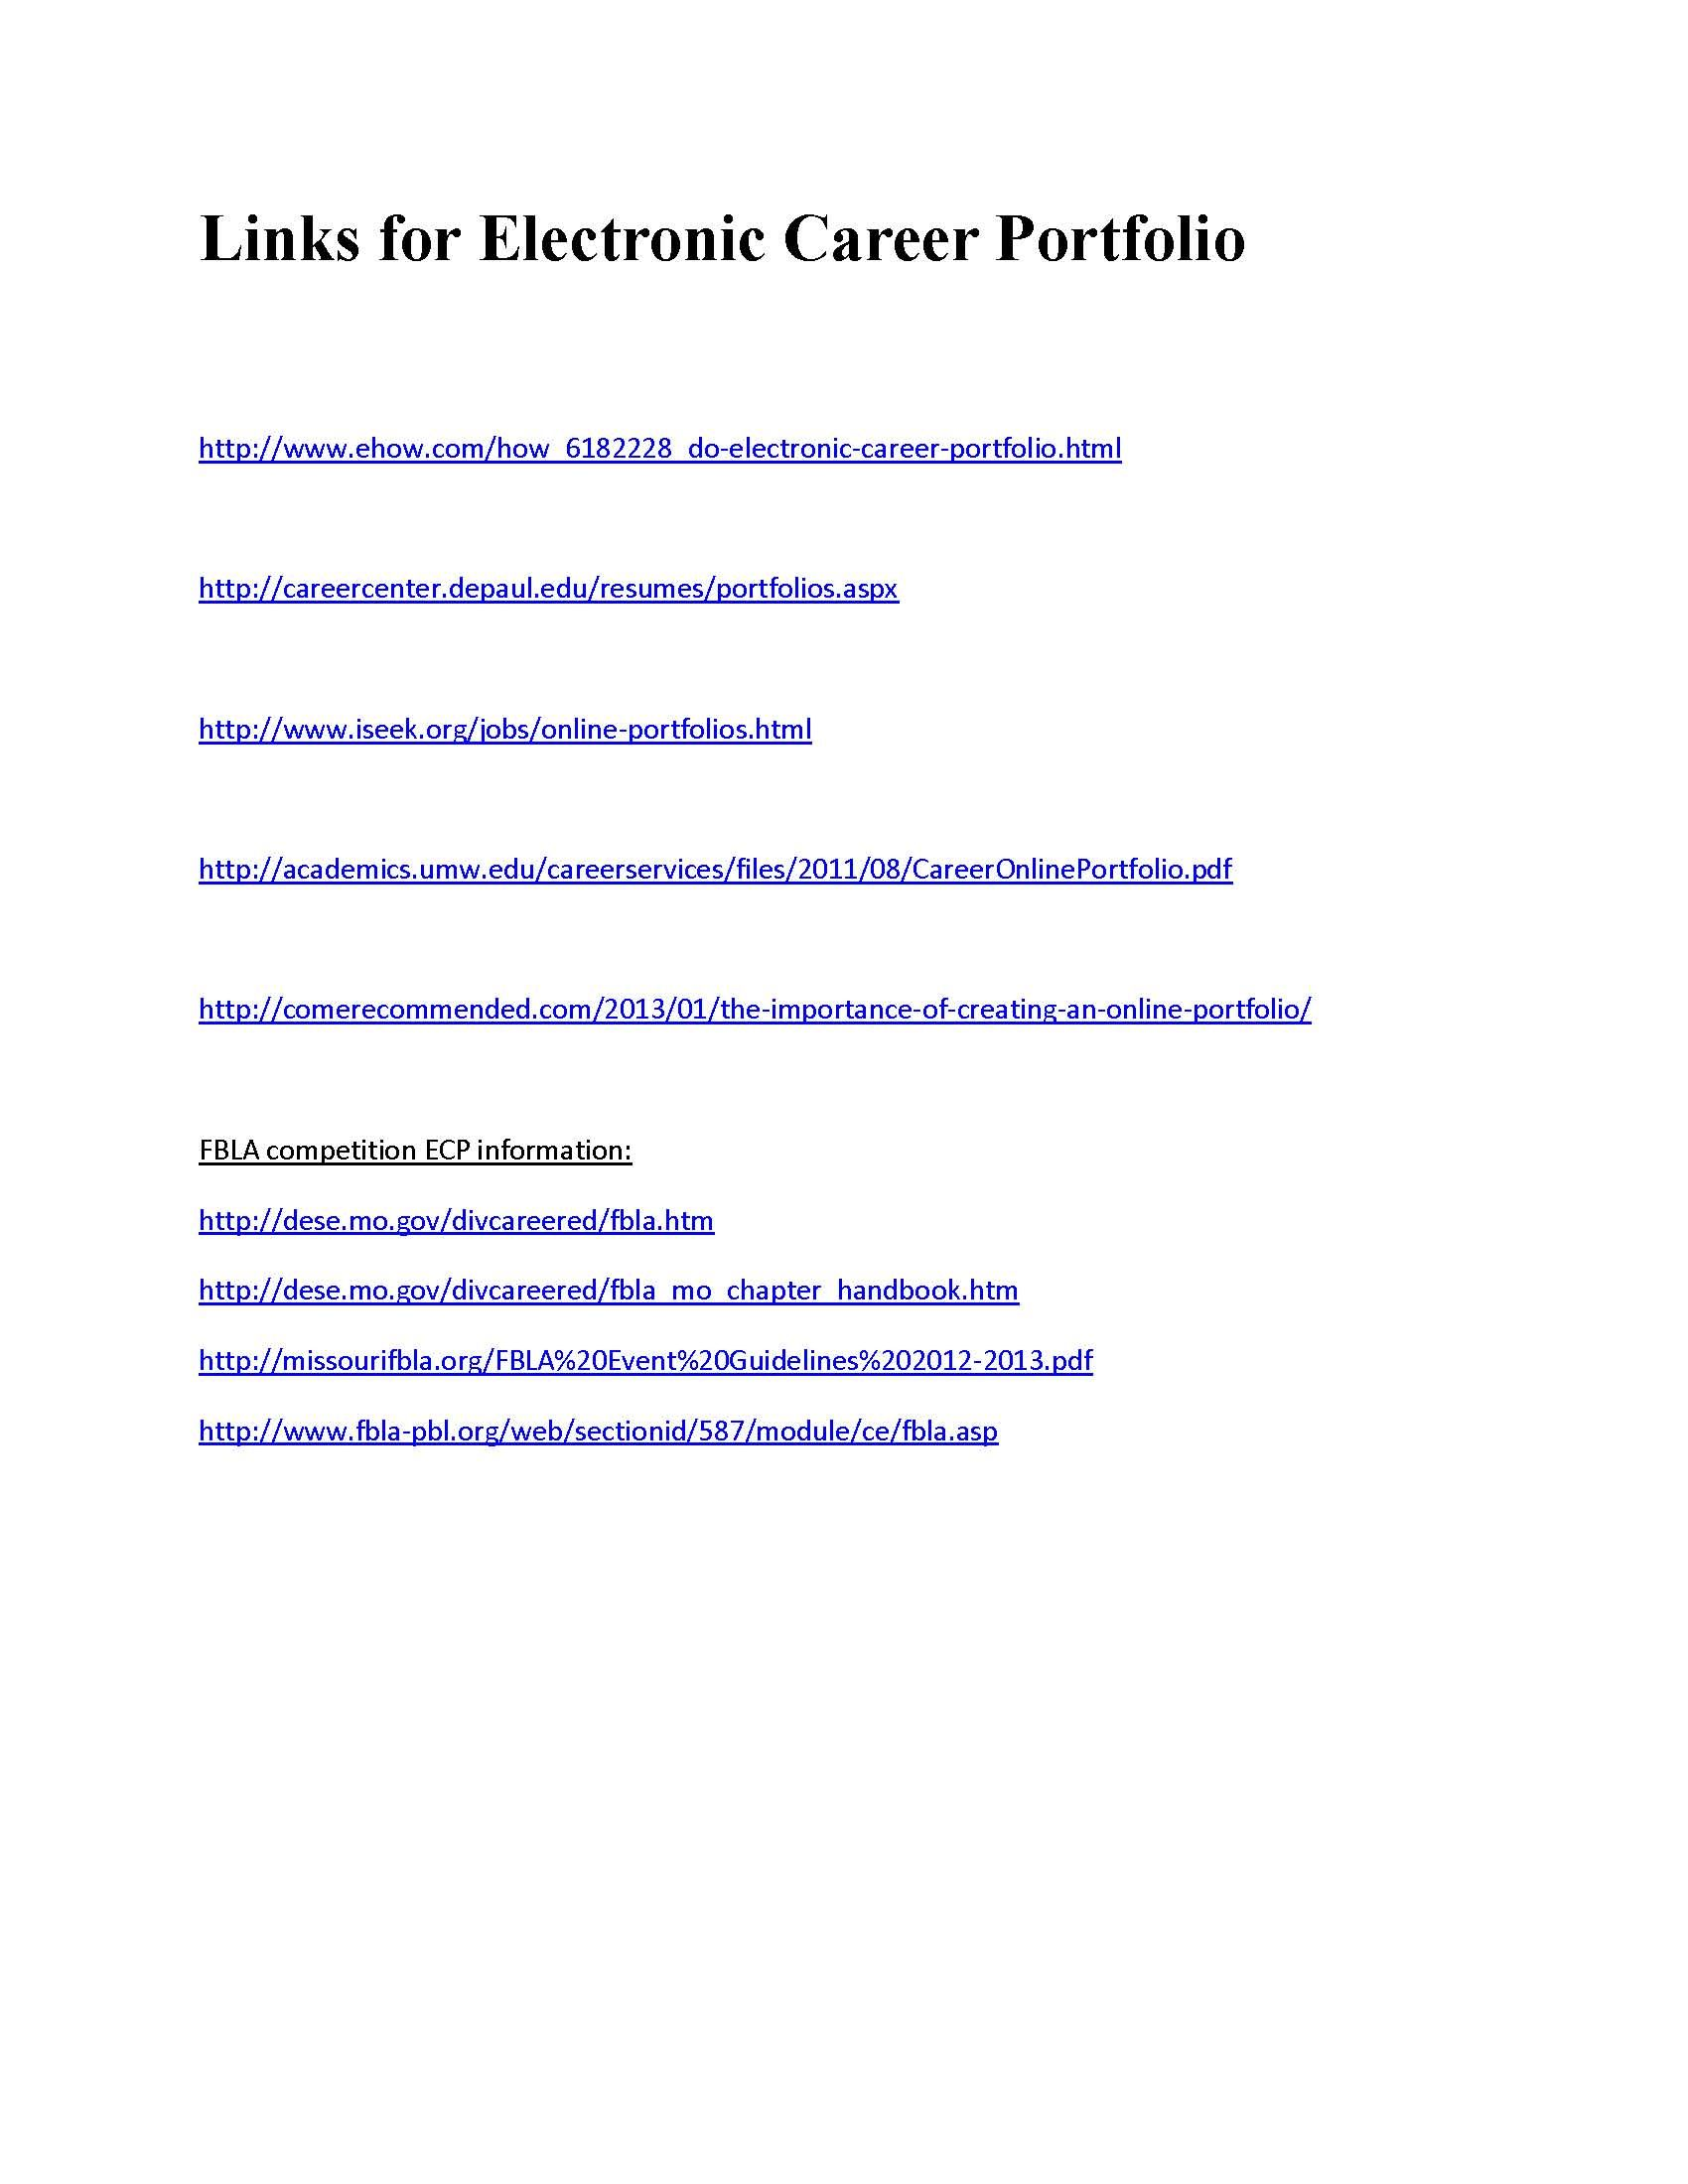 career portfolio examples sample business career portfolio links to help you create an electronic career portfolio